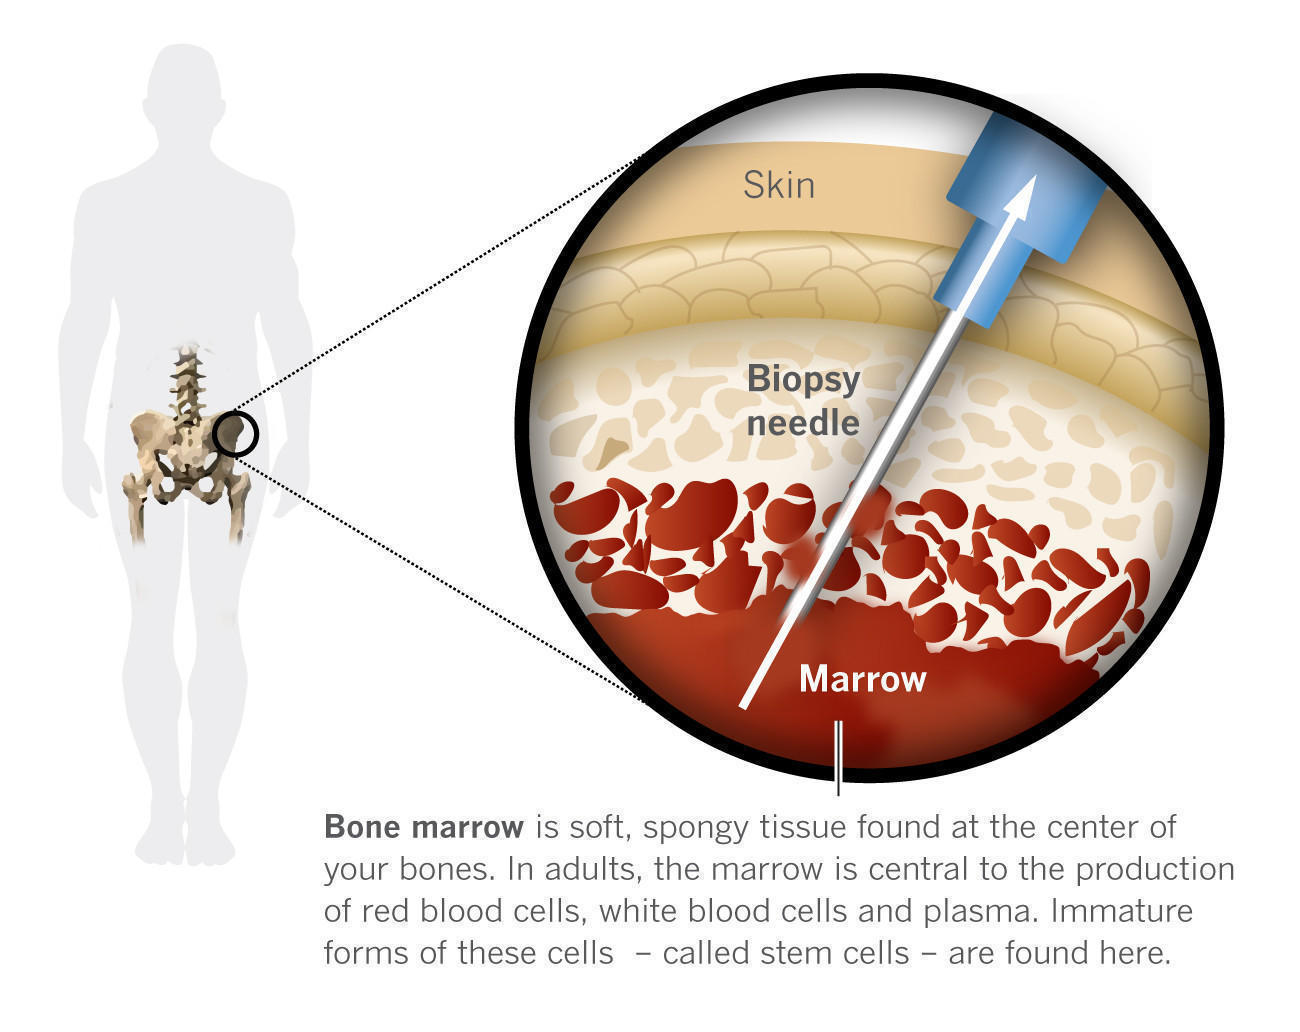 Repairing Muscles With Stem Cell Therapy La Times